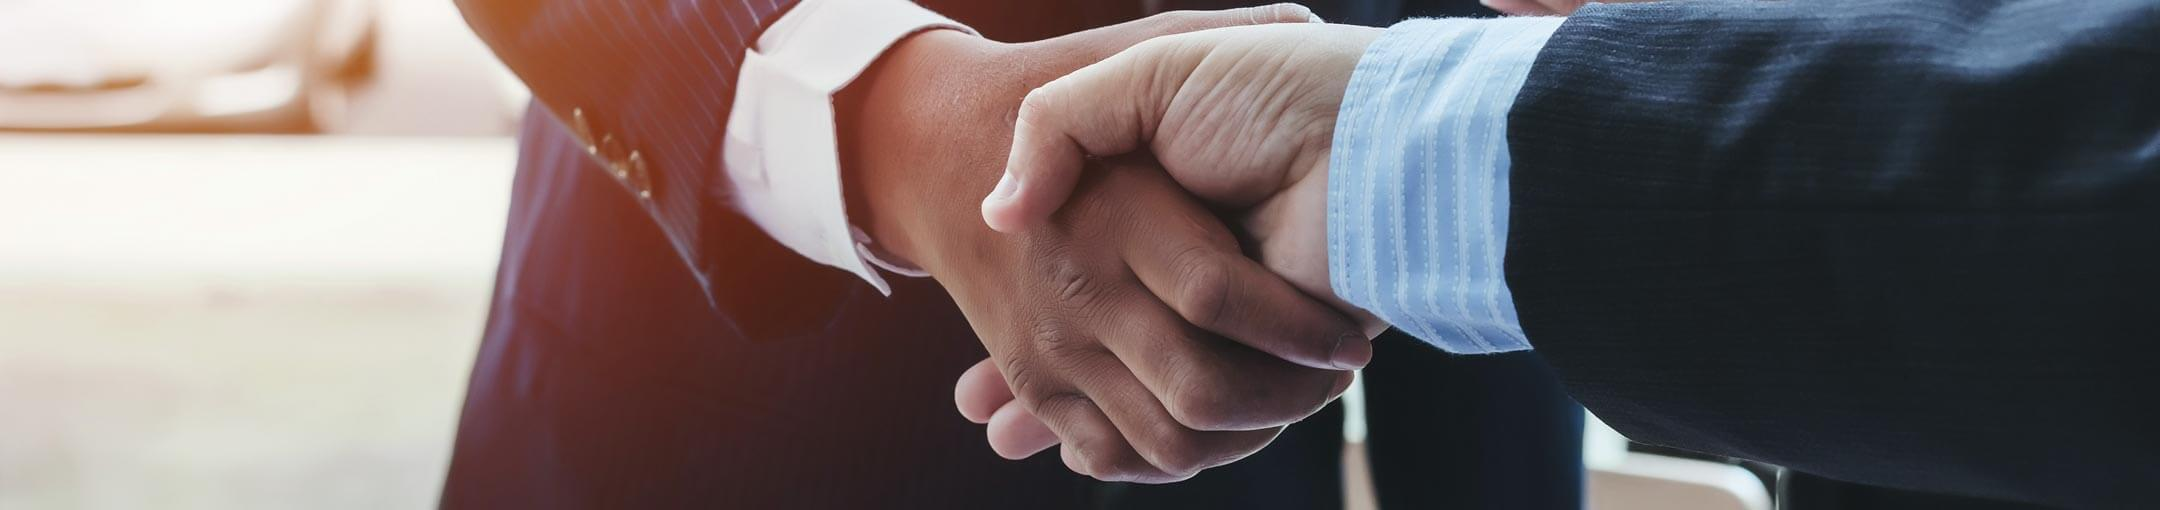 Two hands of people wearing suits shake hands.